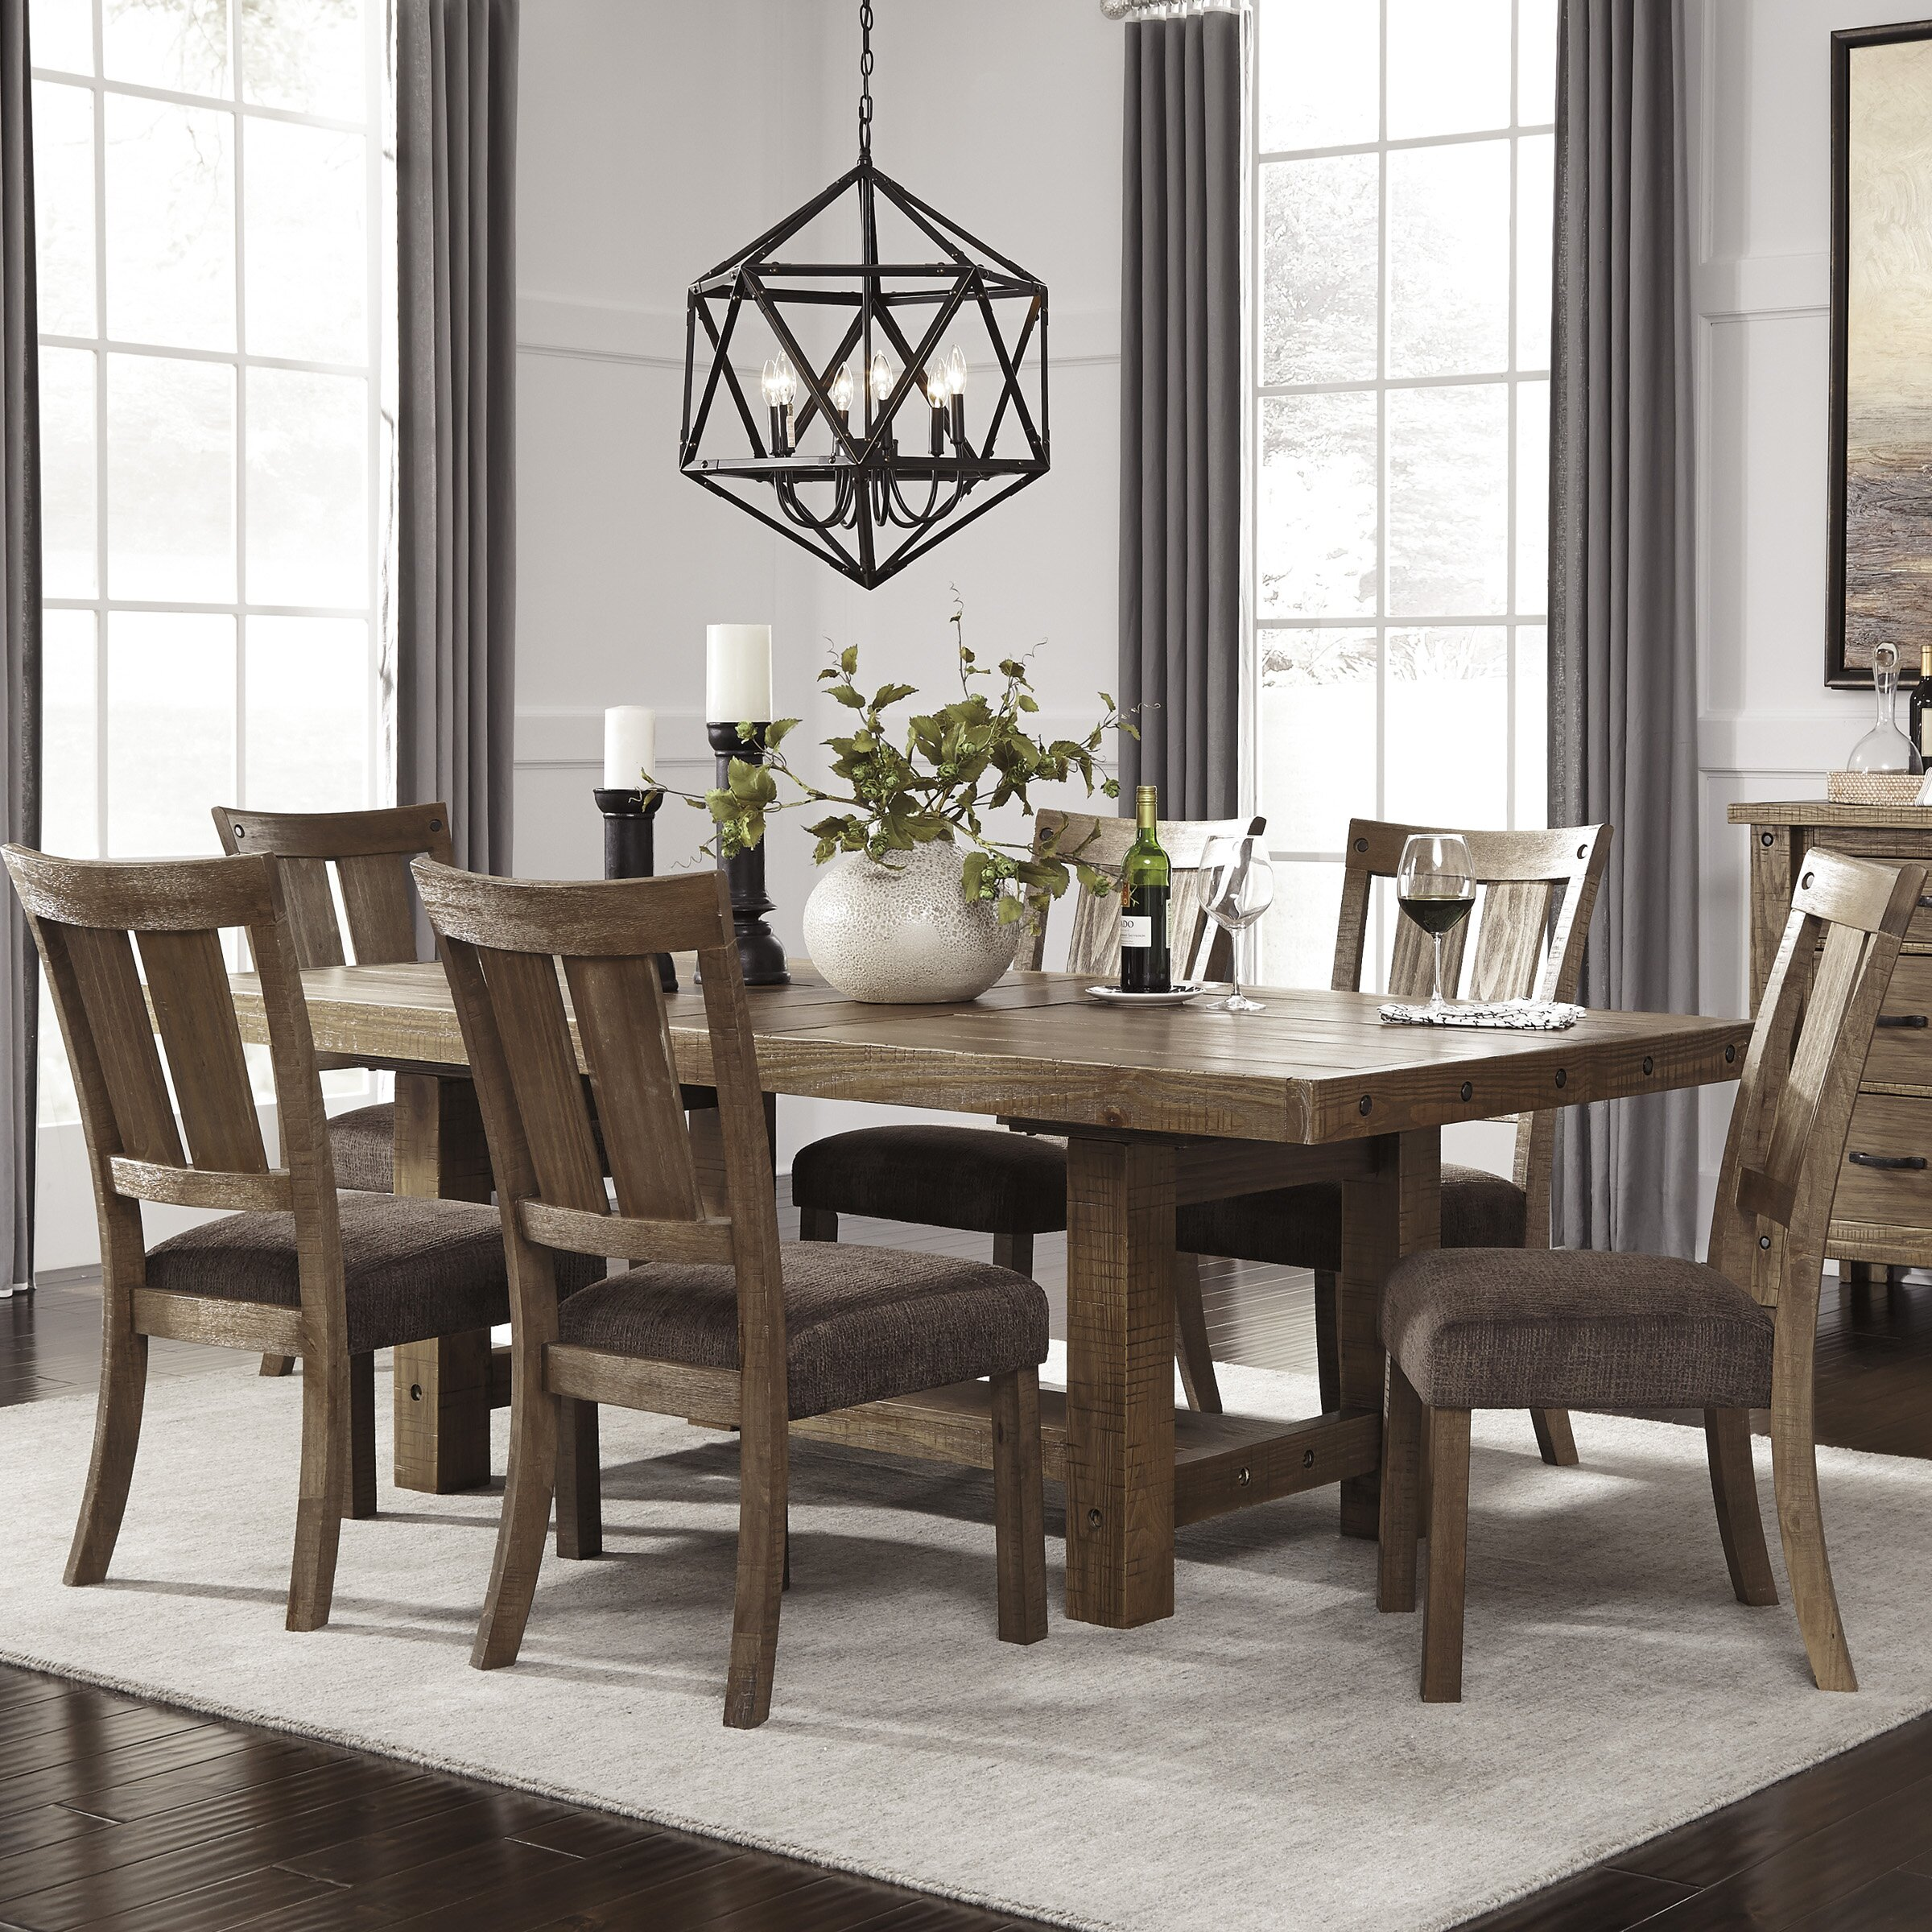 Dining Room Sets Austin Tx: Trent Austin Design Butterfield Counter Height Extendable